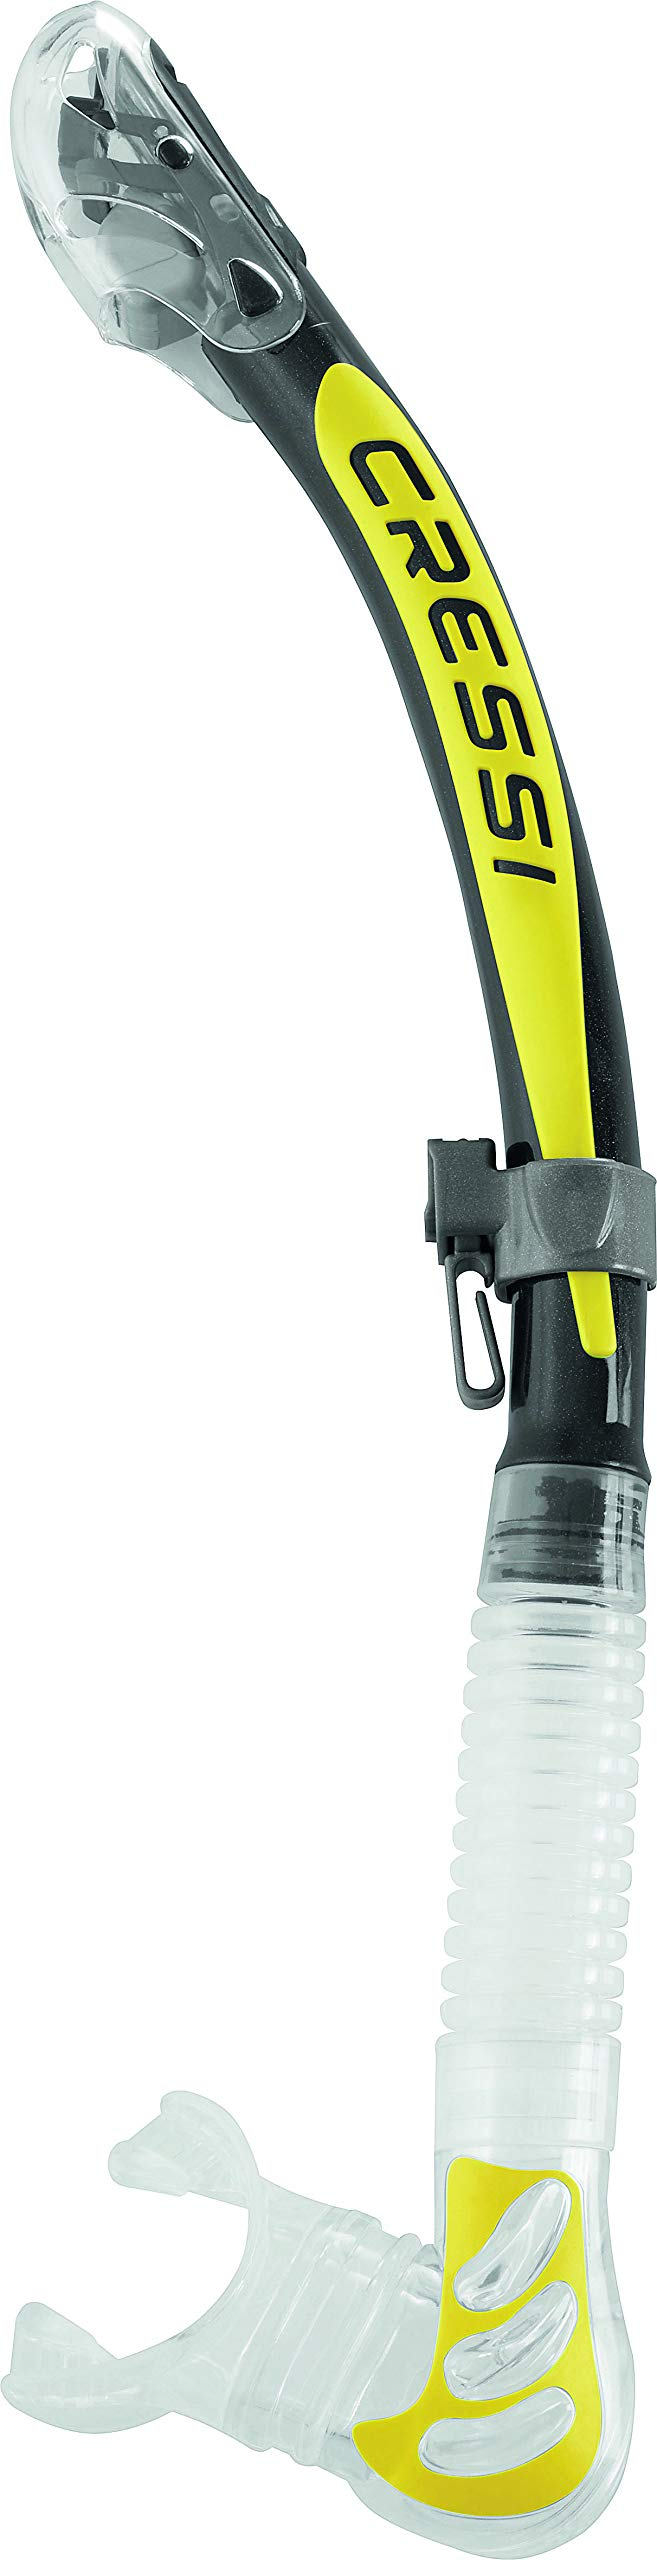 Cressi Alpha Ultra Dry Snorkel (Clear/Yellow) by Cressi